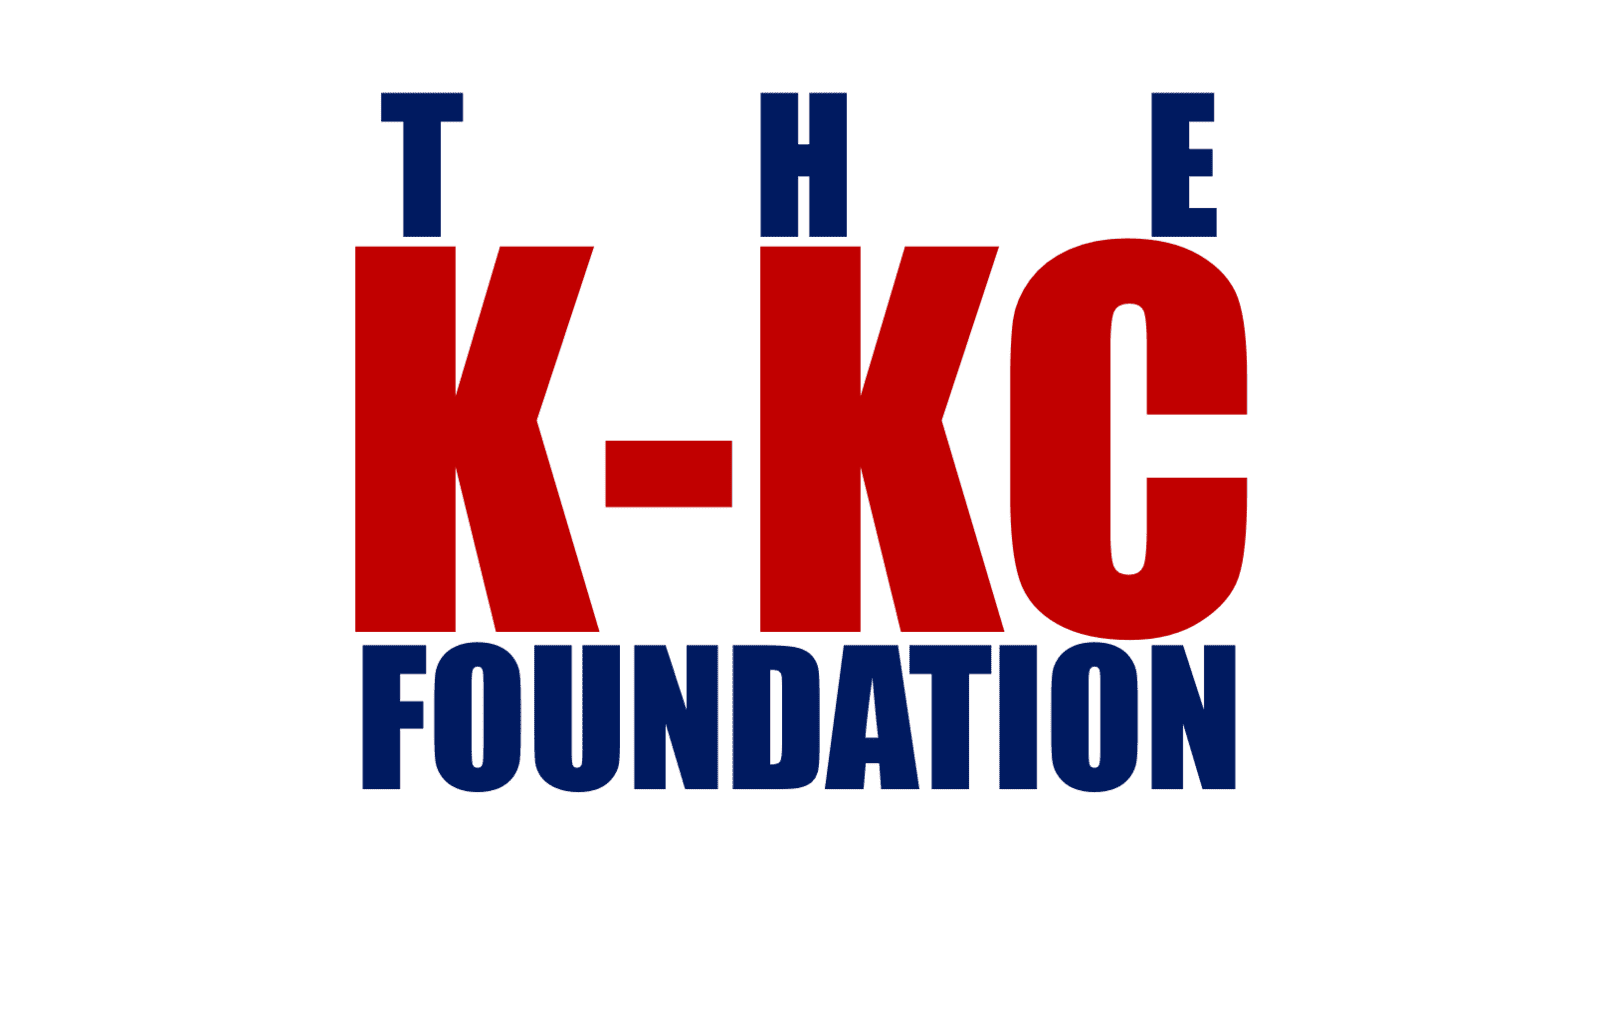 The K-KC Foundation